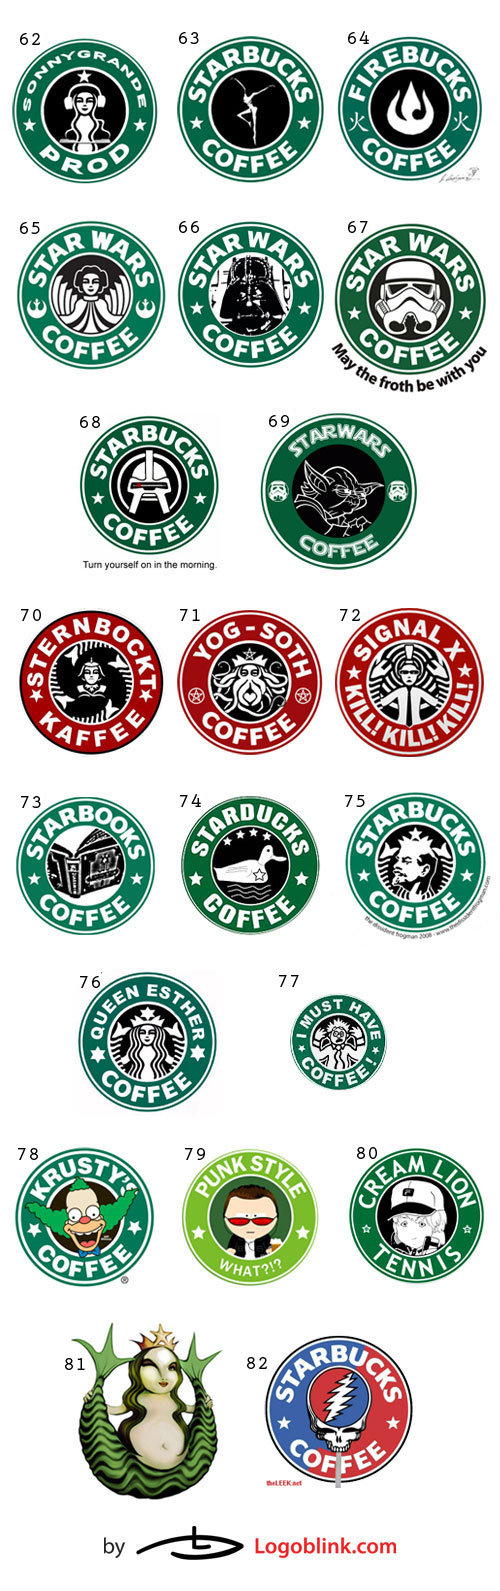 coffee chain logo mania designs